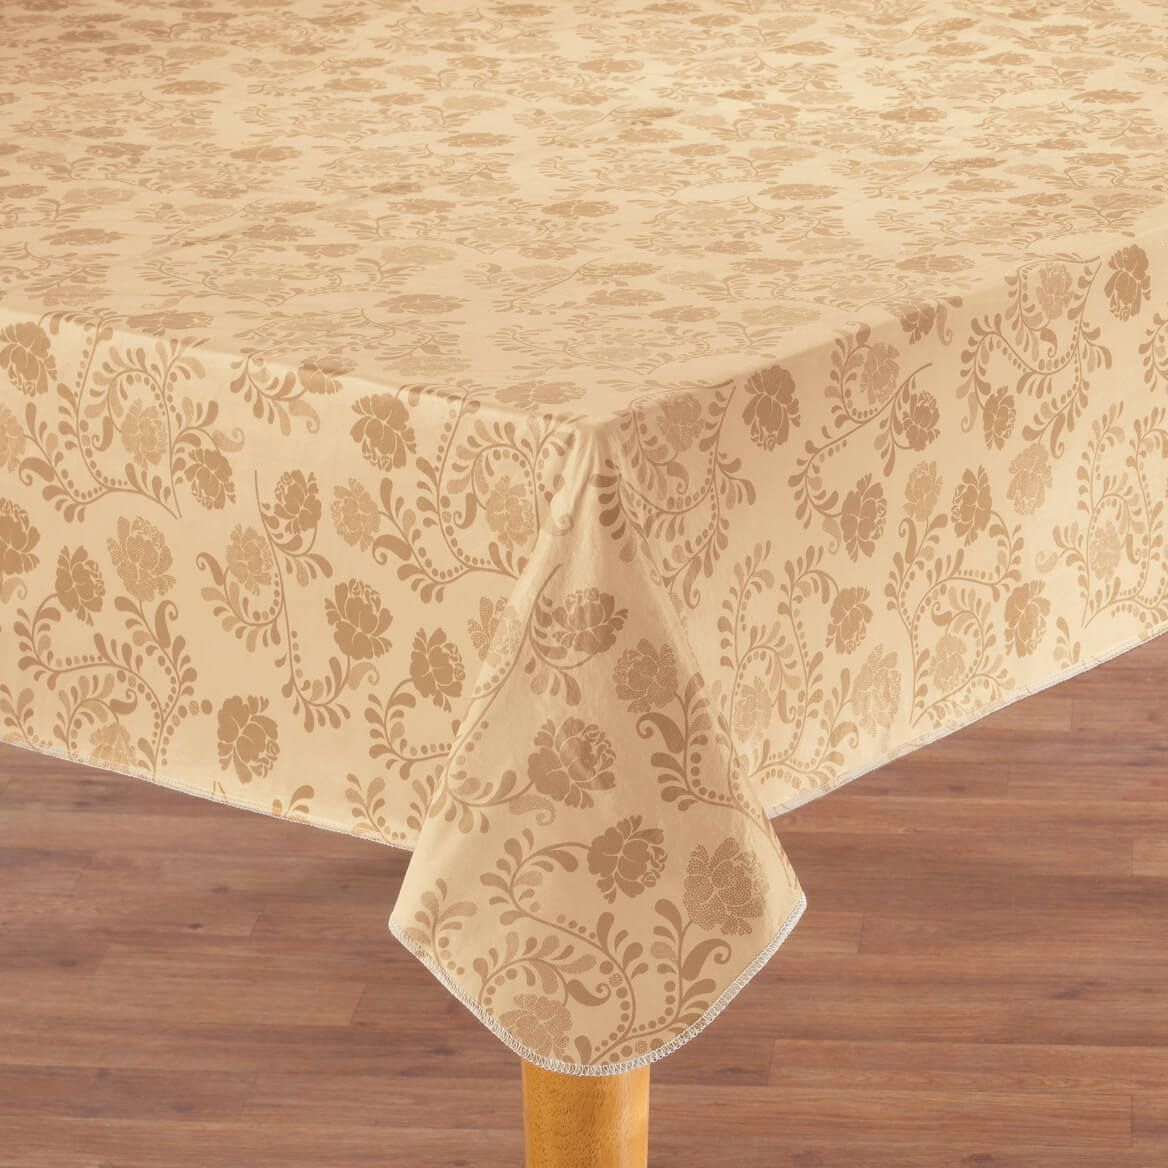 The Kathleen Vinyl Tablecover By Home-Style Kitchen™-358487